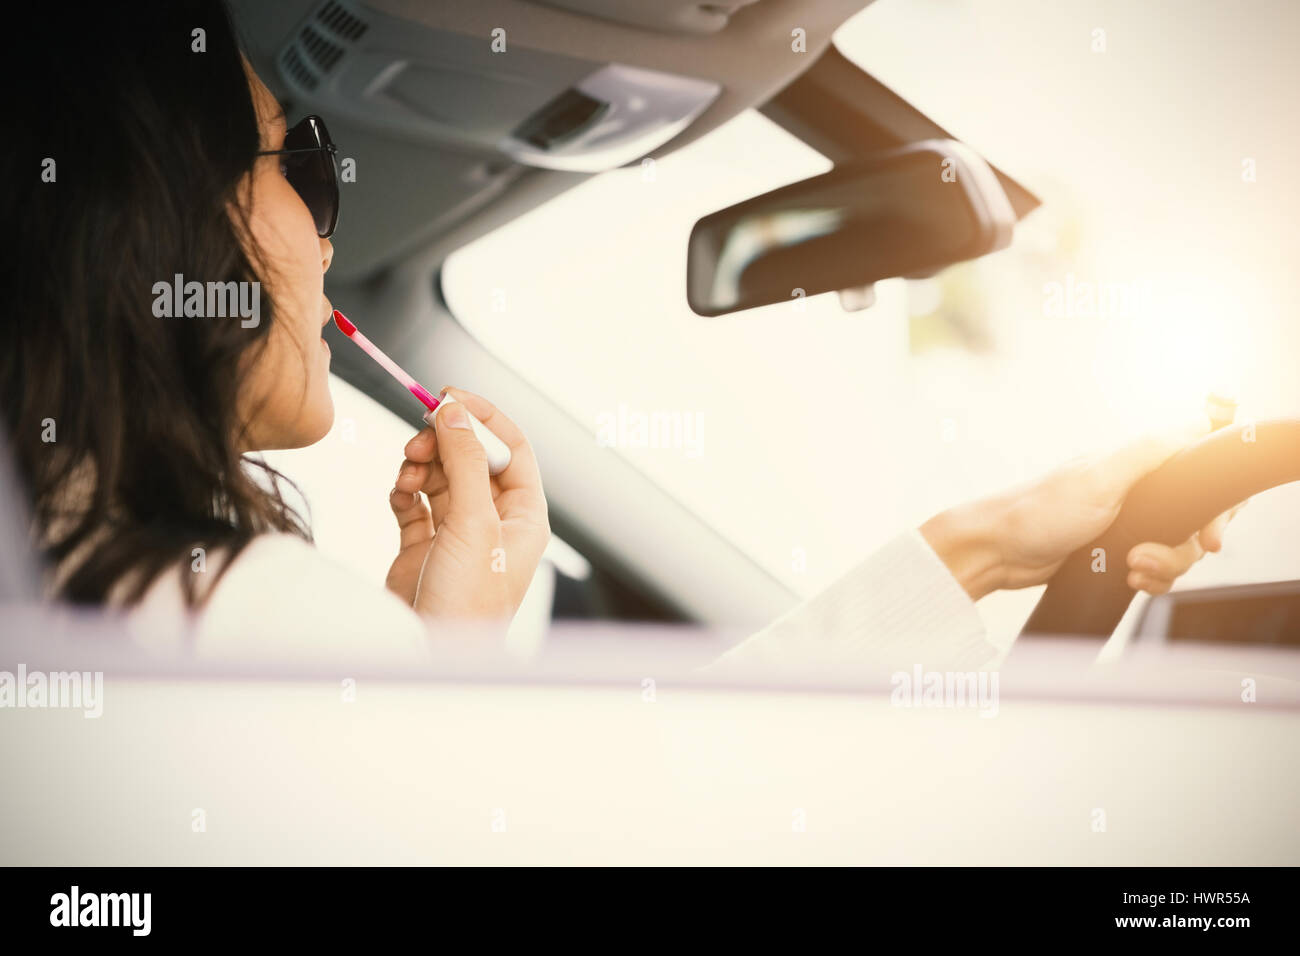 Woman driving a car - Stock Image